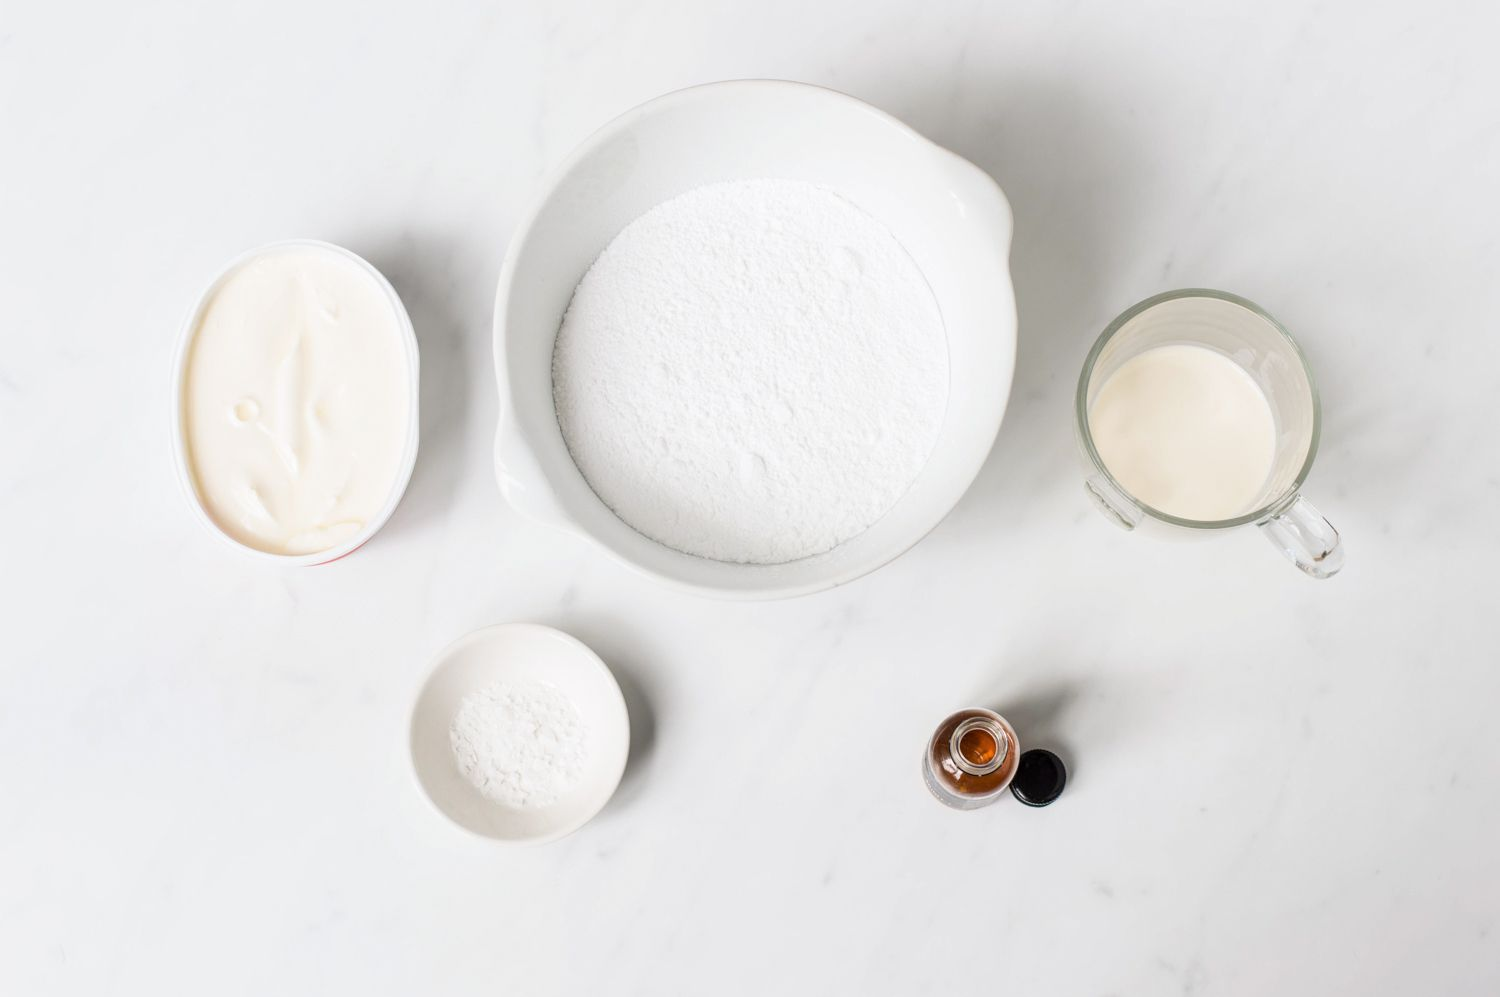 Ingredients for basic cream cheese frosting without butter